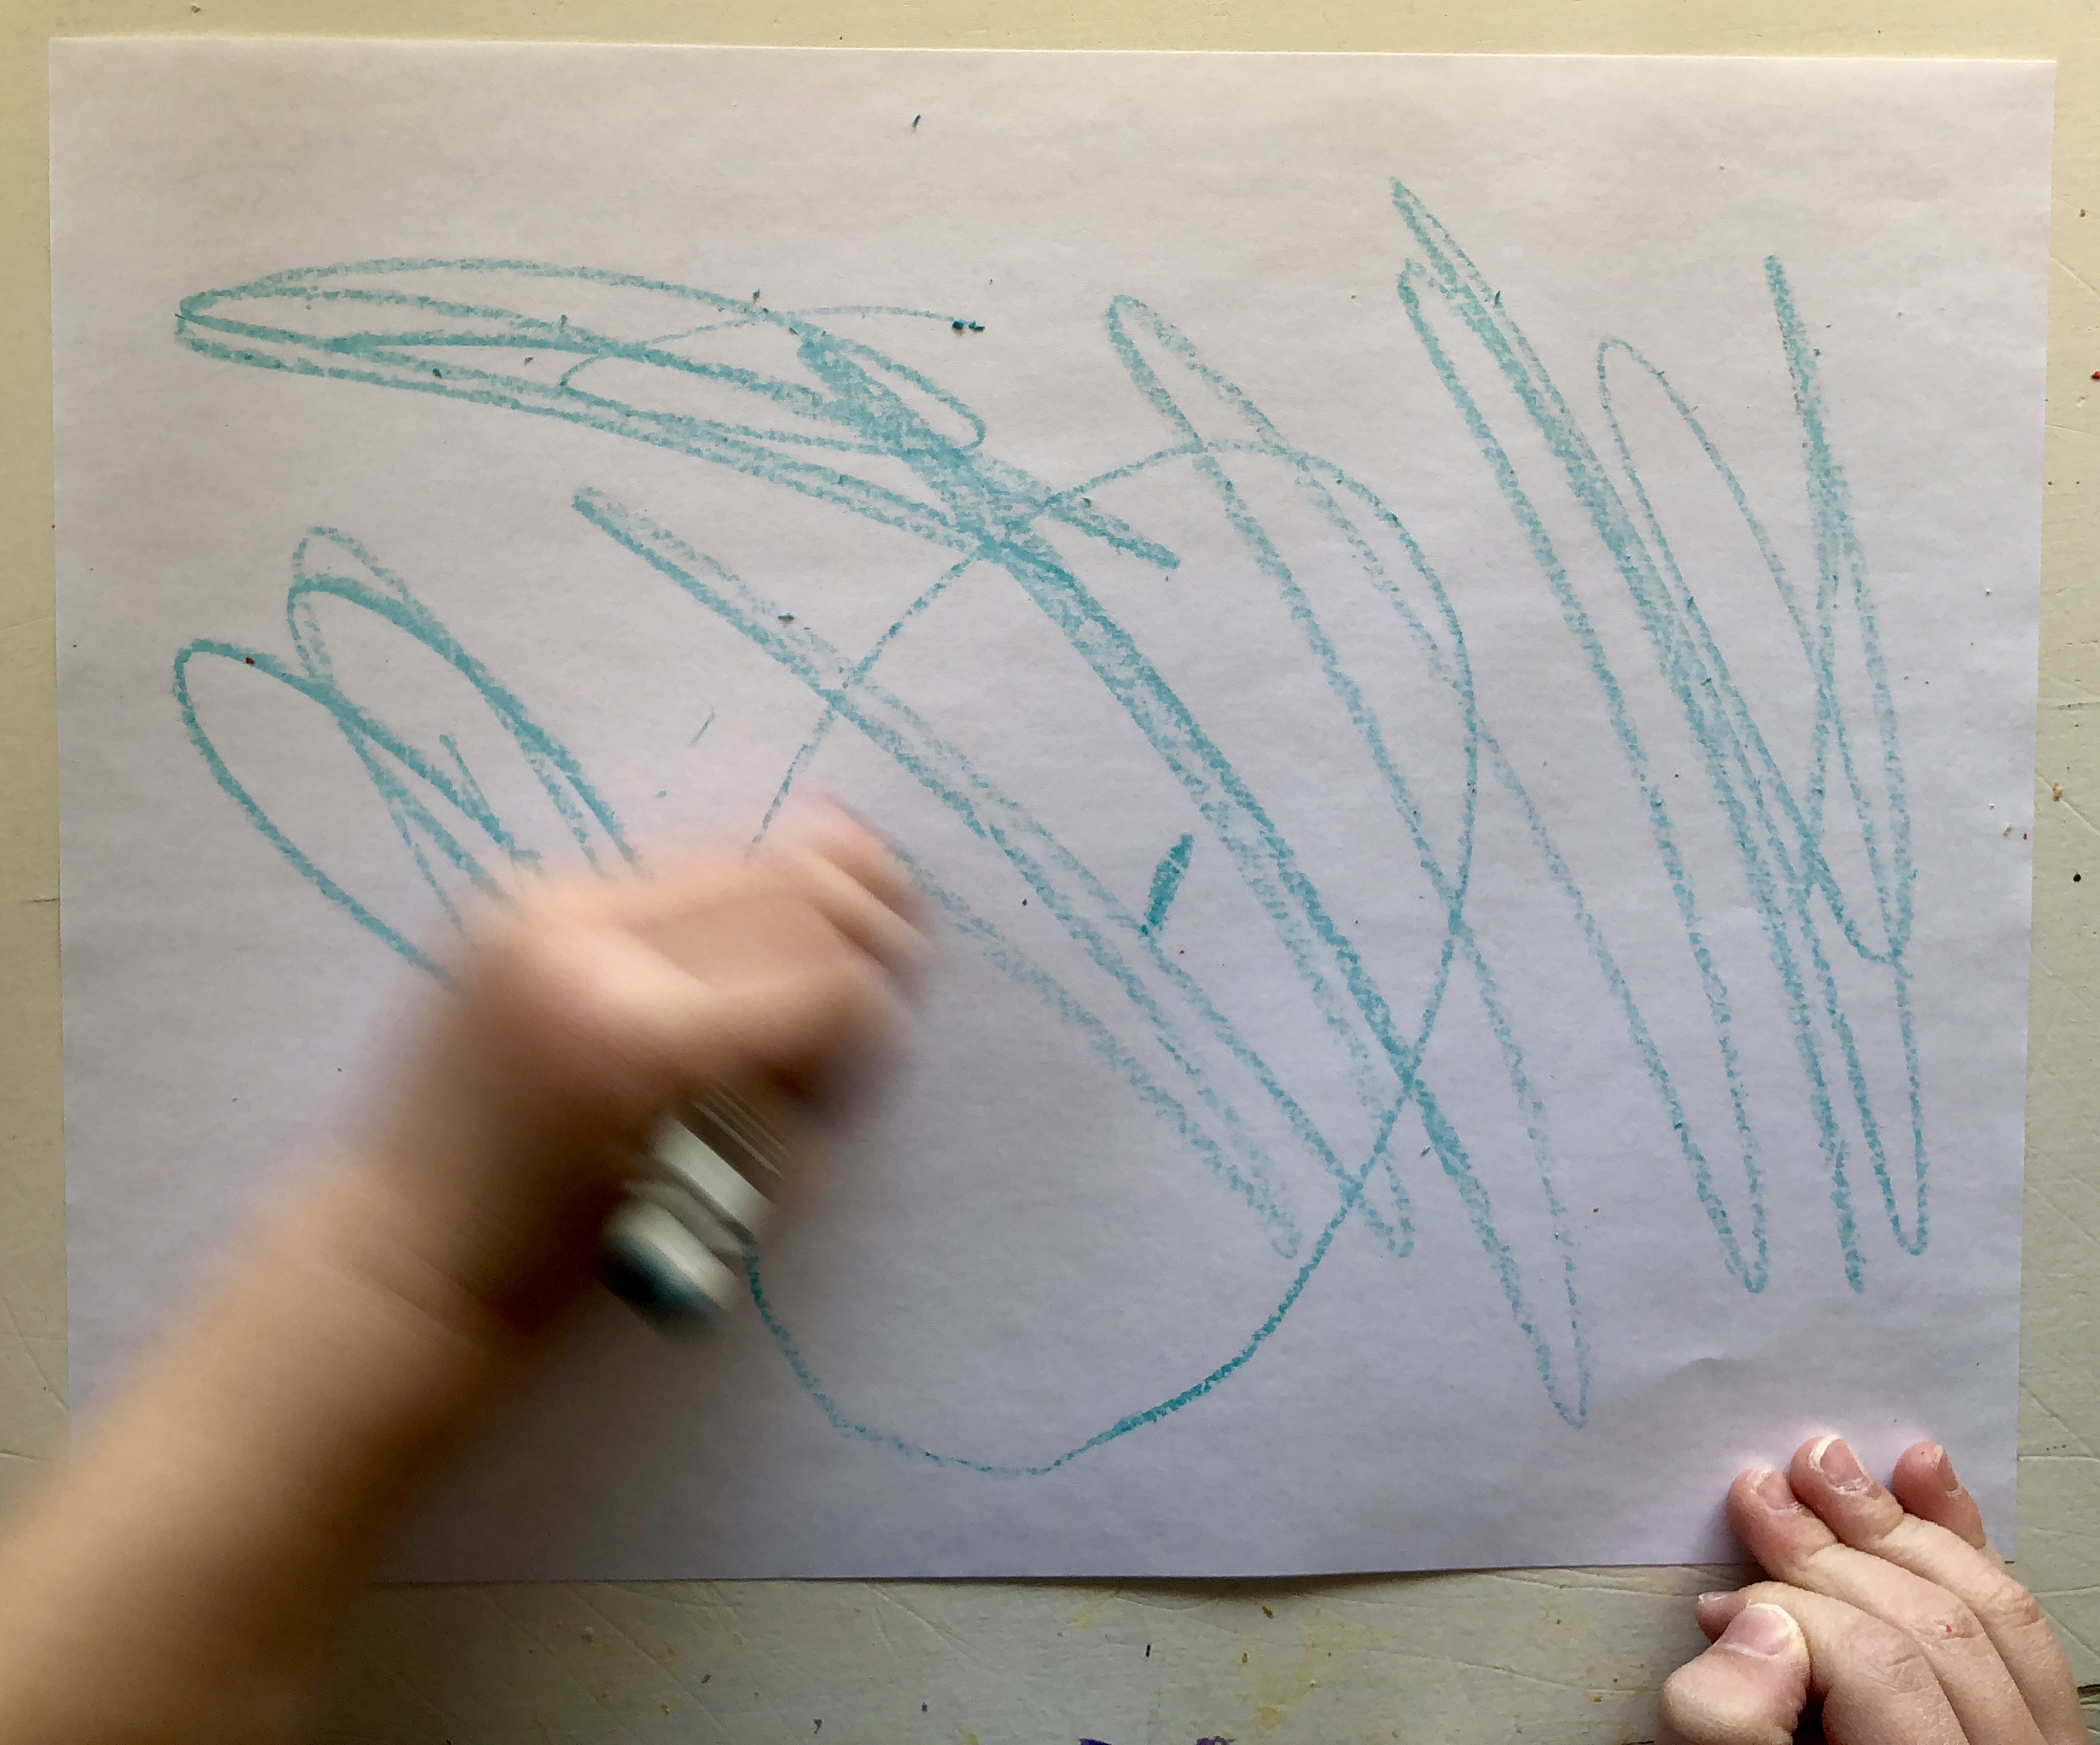 child's hand scribbling with a crayon